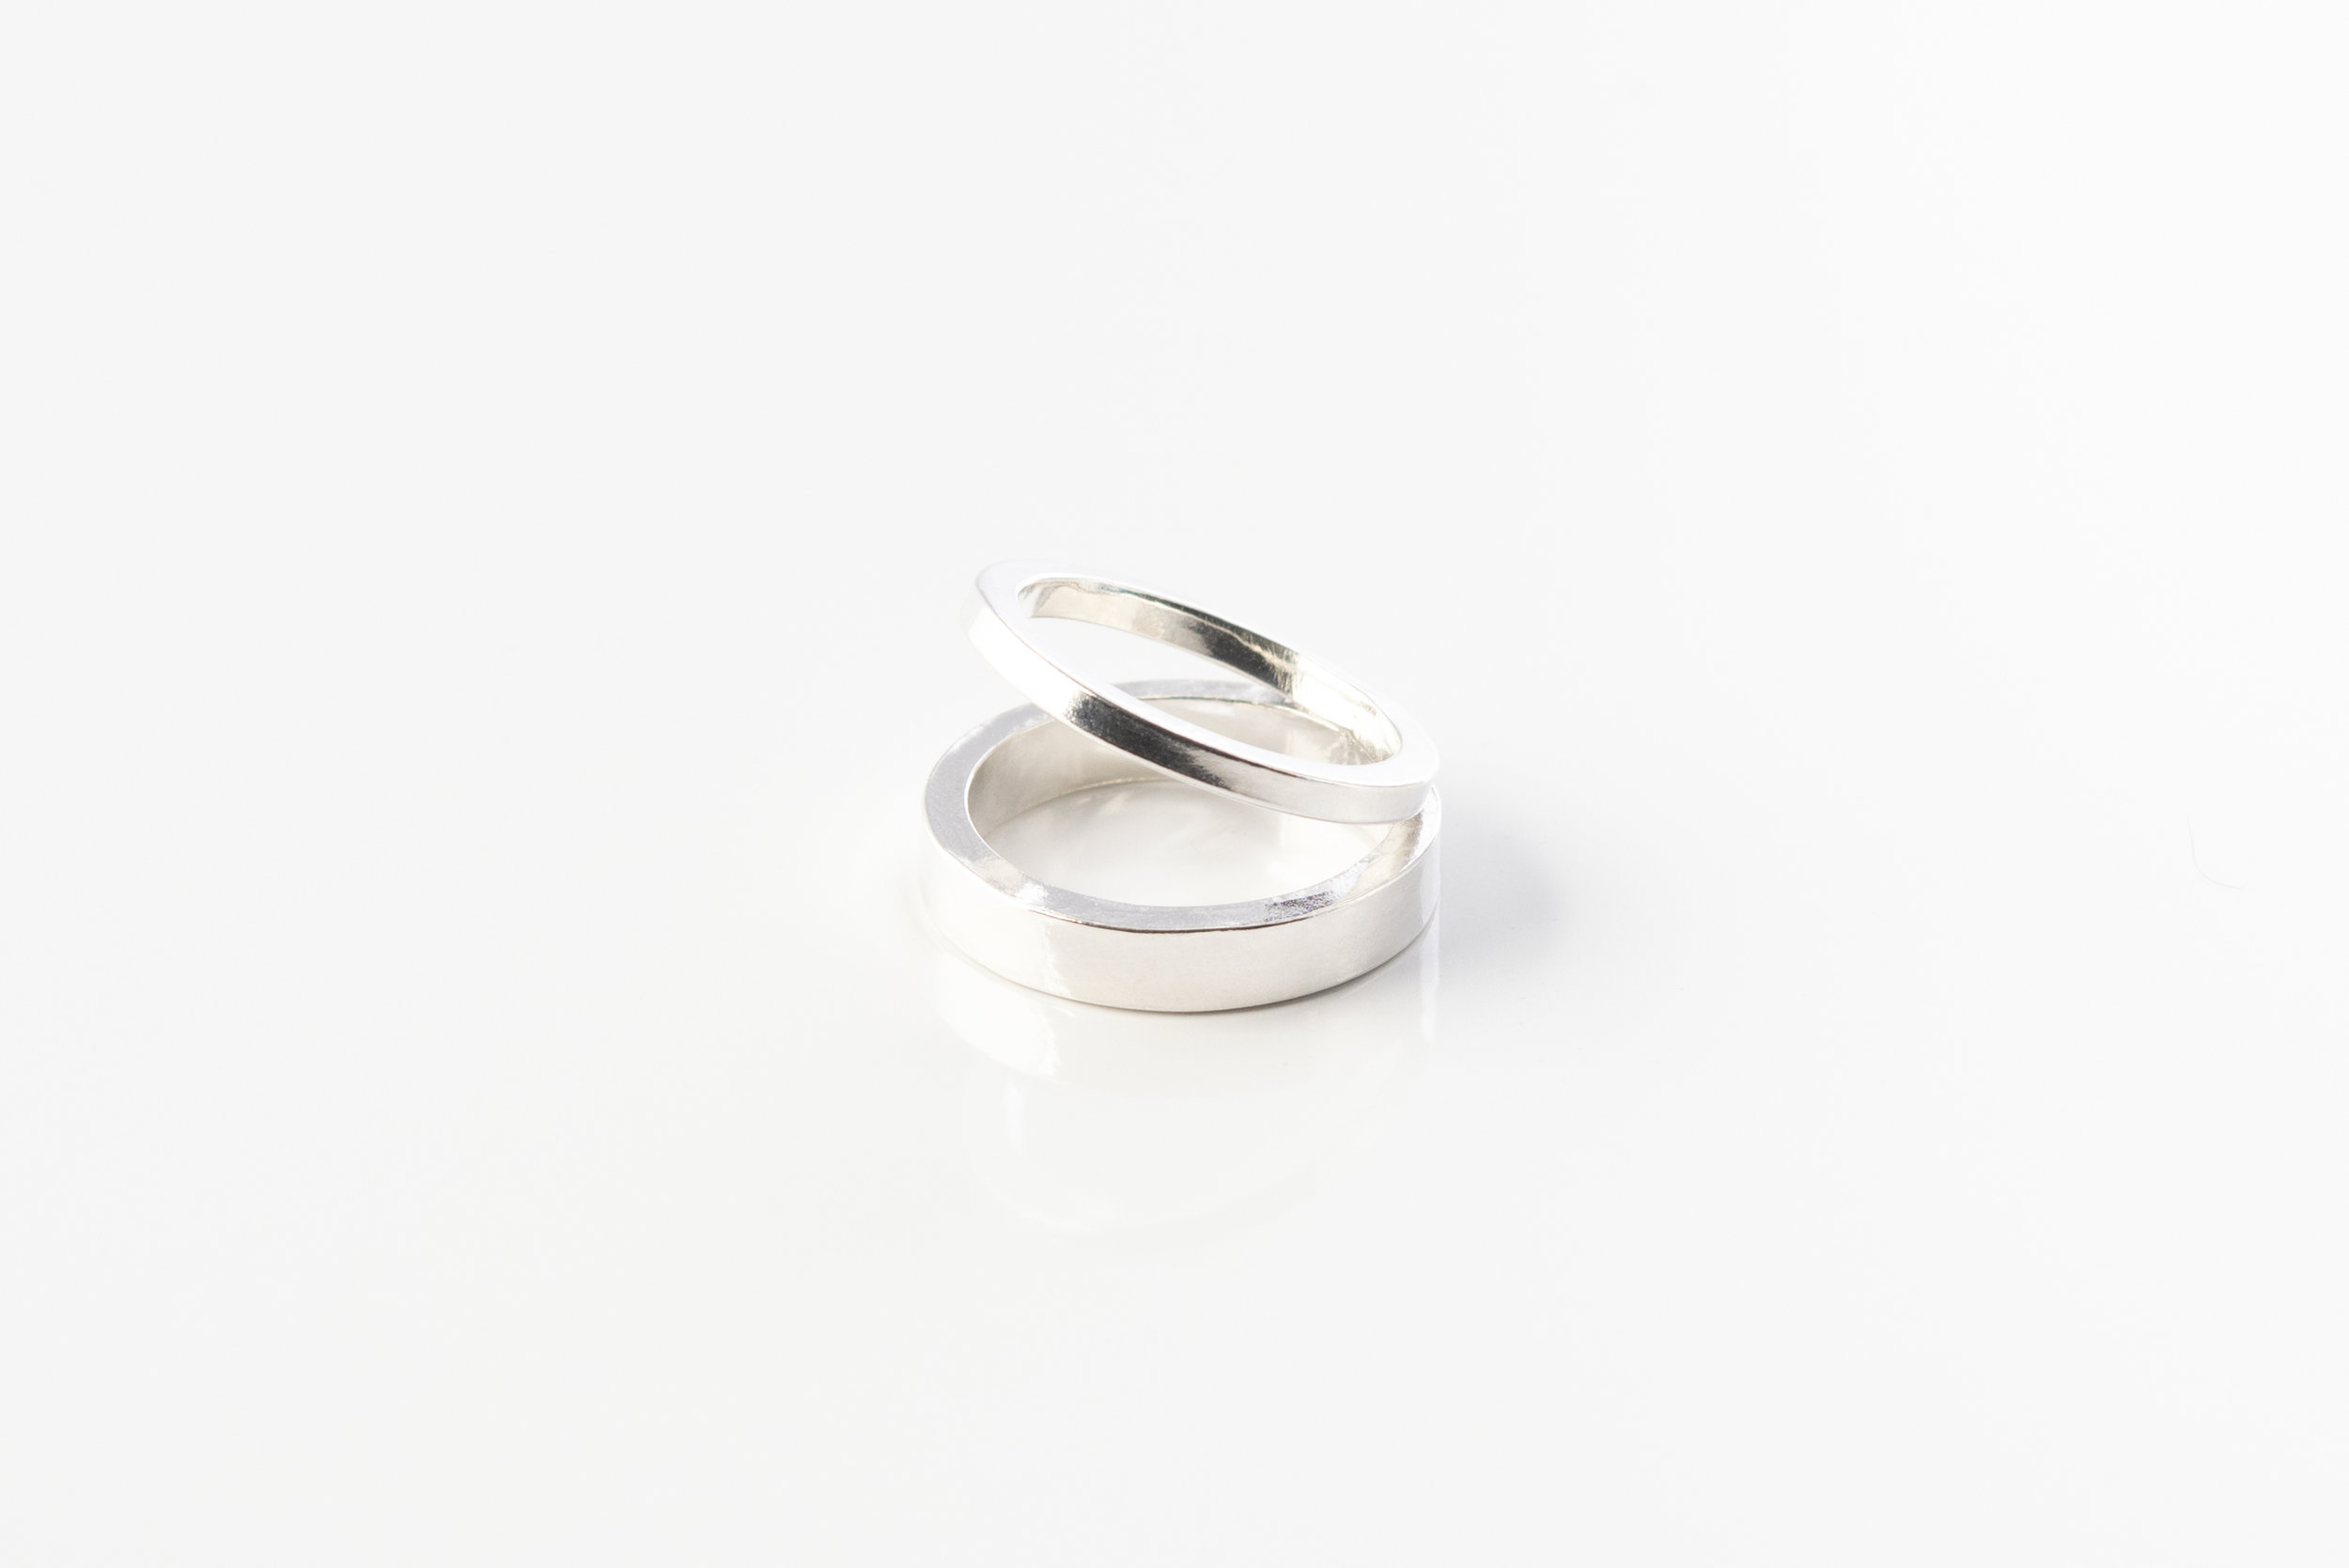 22_Ulterior_double band ring_10.jpg